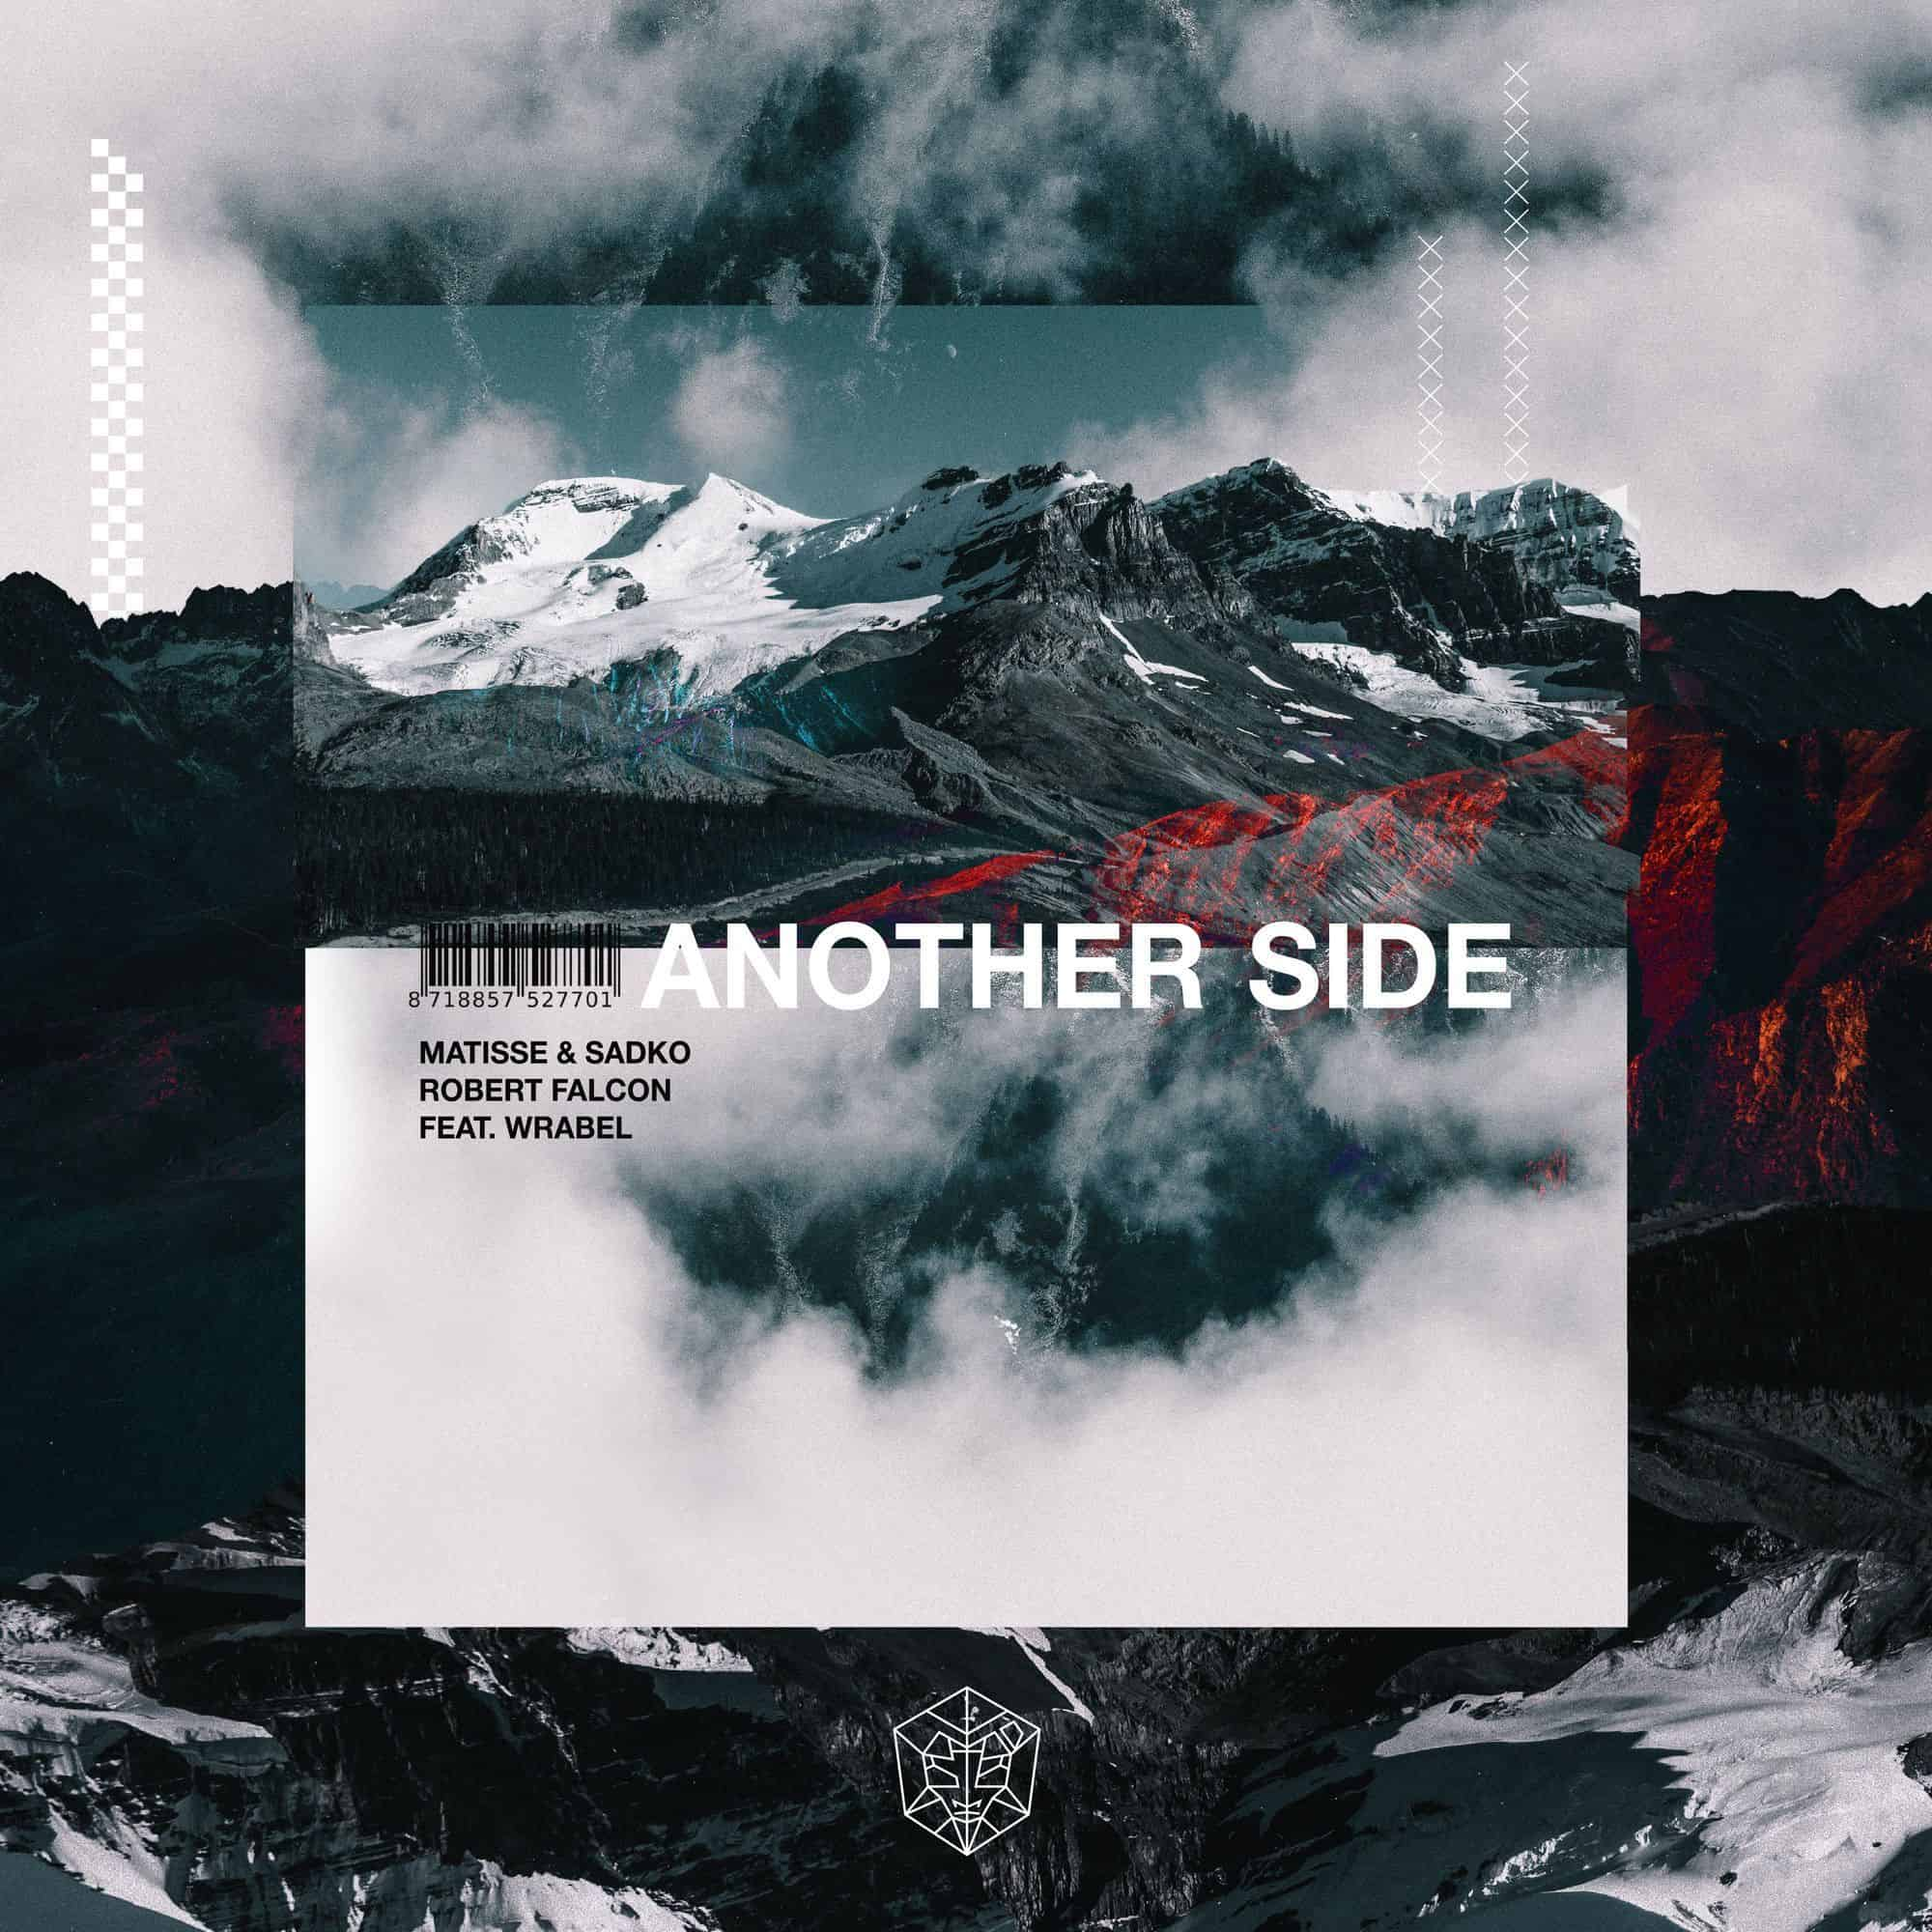 Matisse & Sadko, Robert Falcon – Another Side (feat. Wrabel)